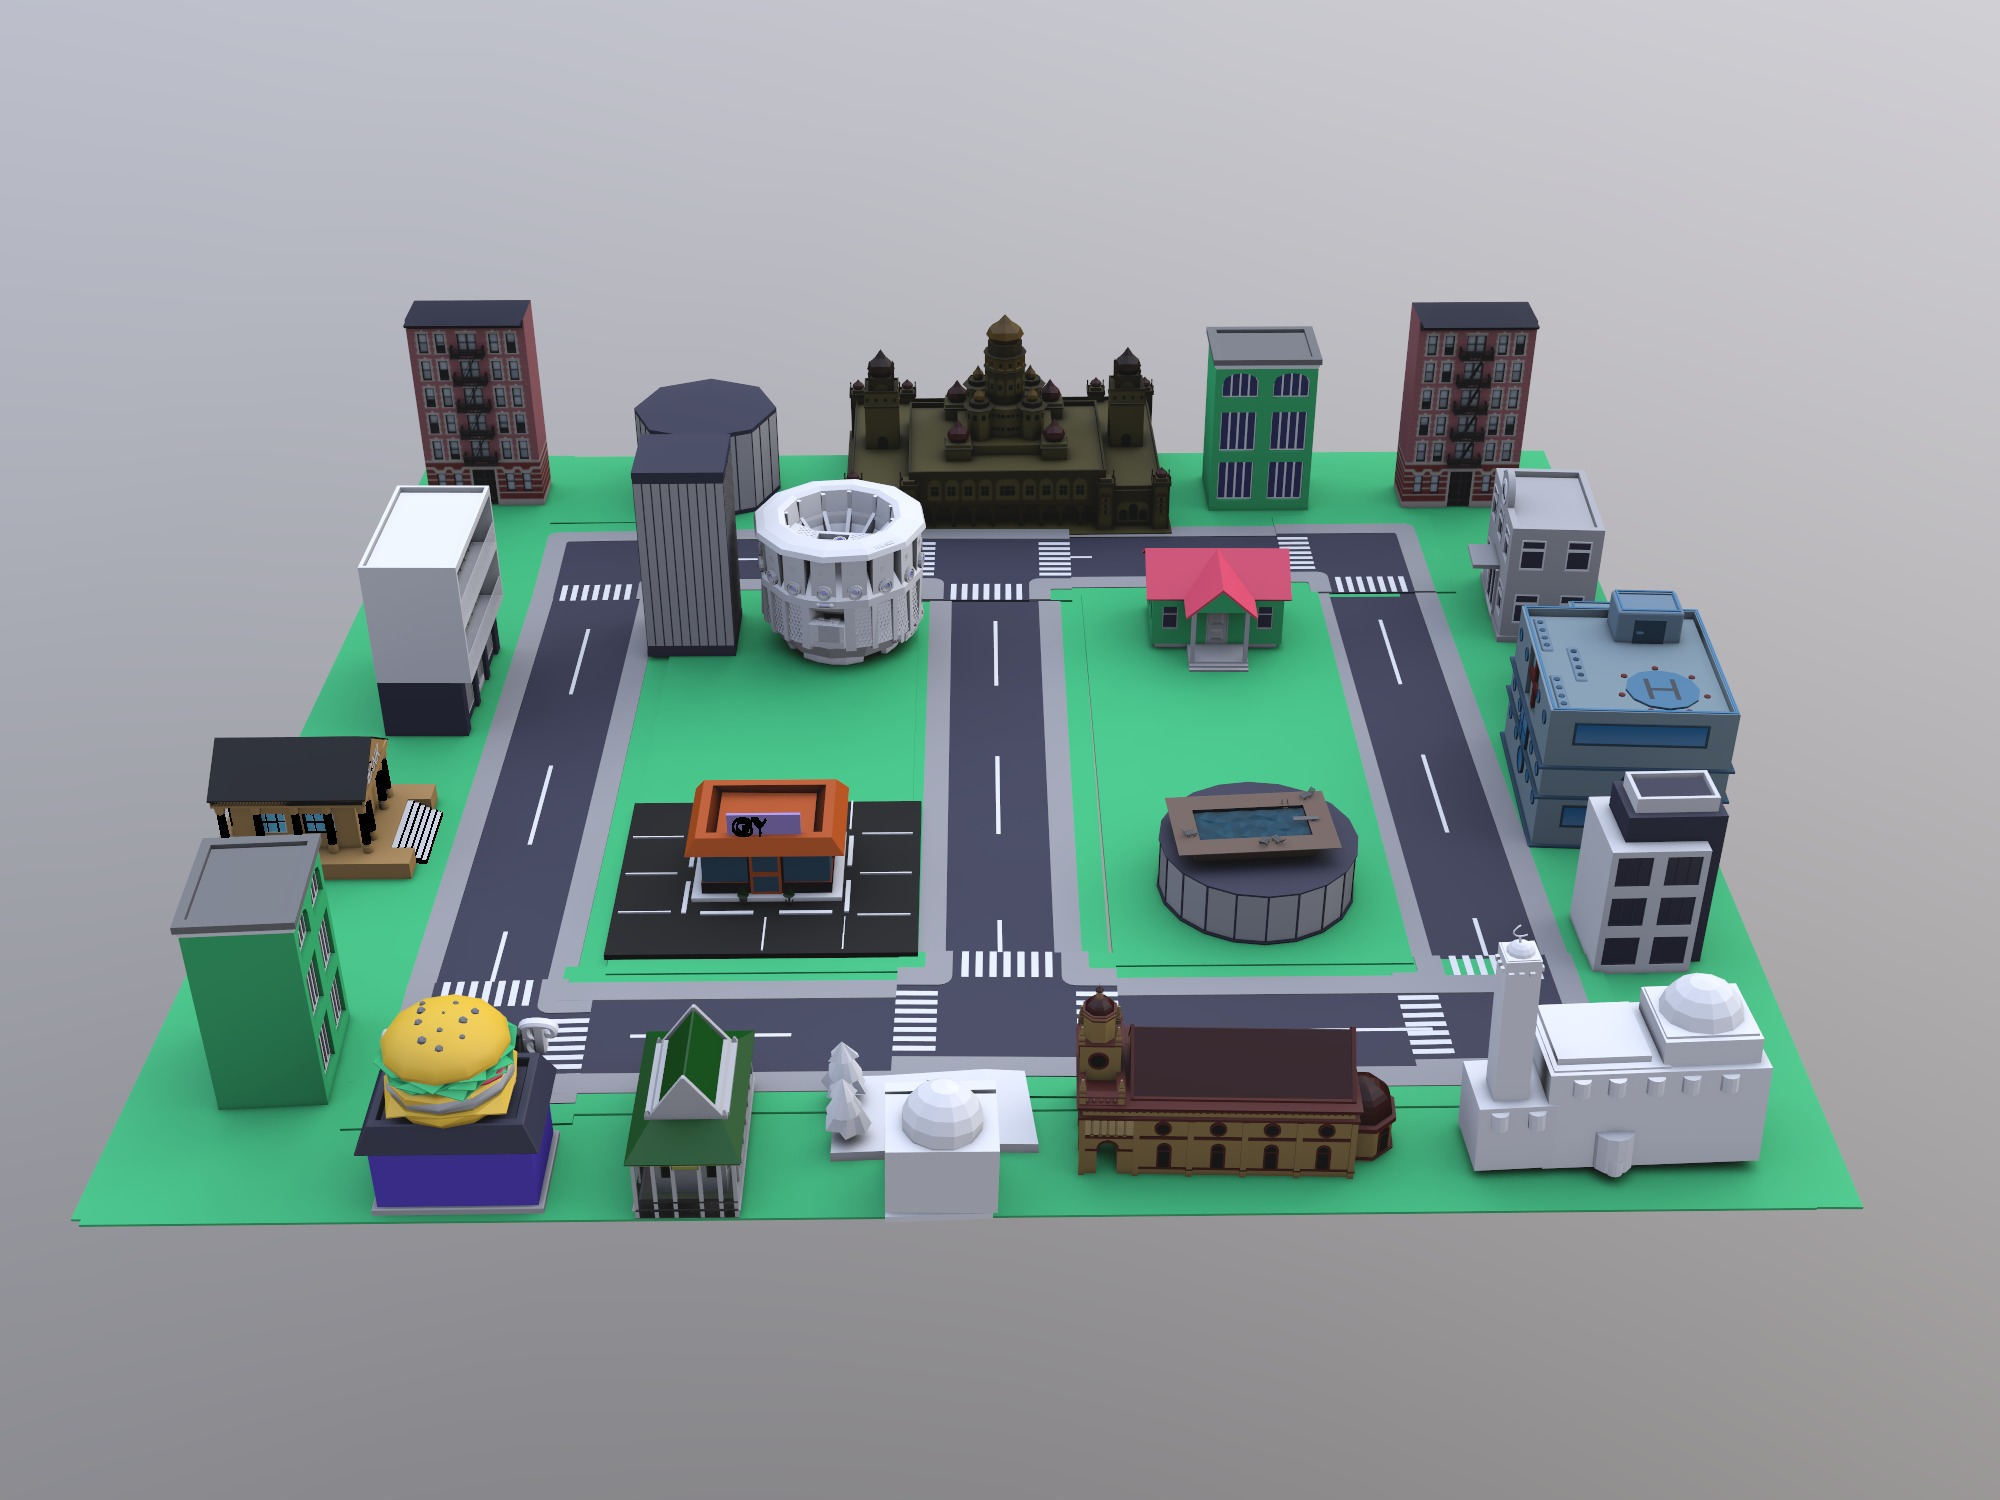 campus (copy) - 3D design by aa434401 on Dec 16, 2018